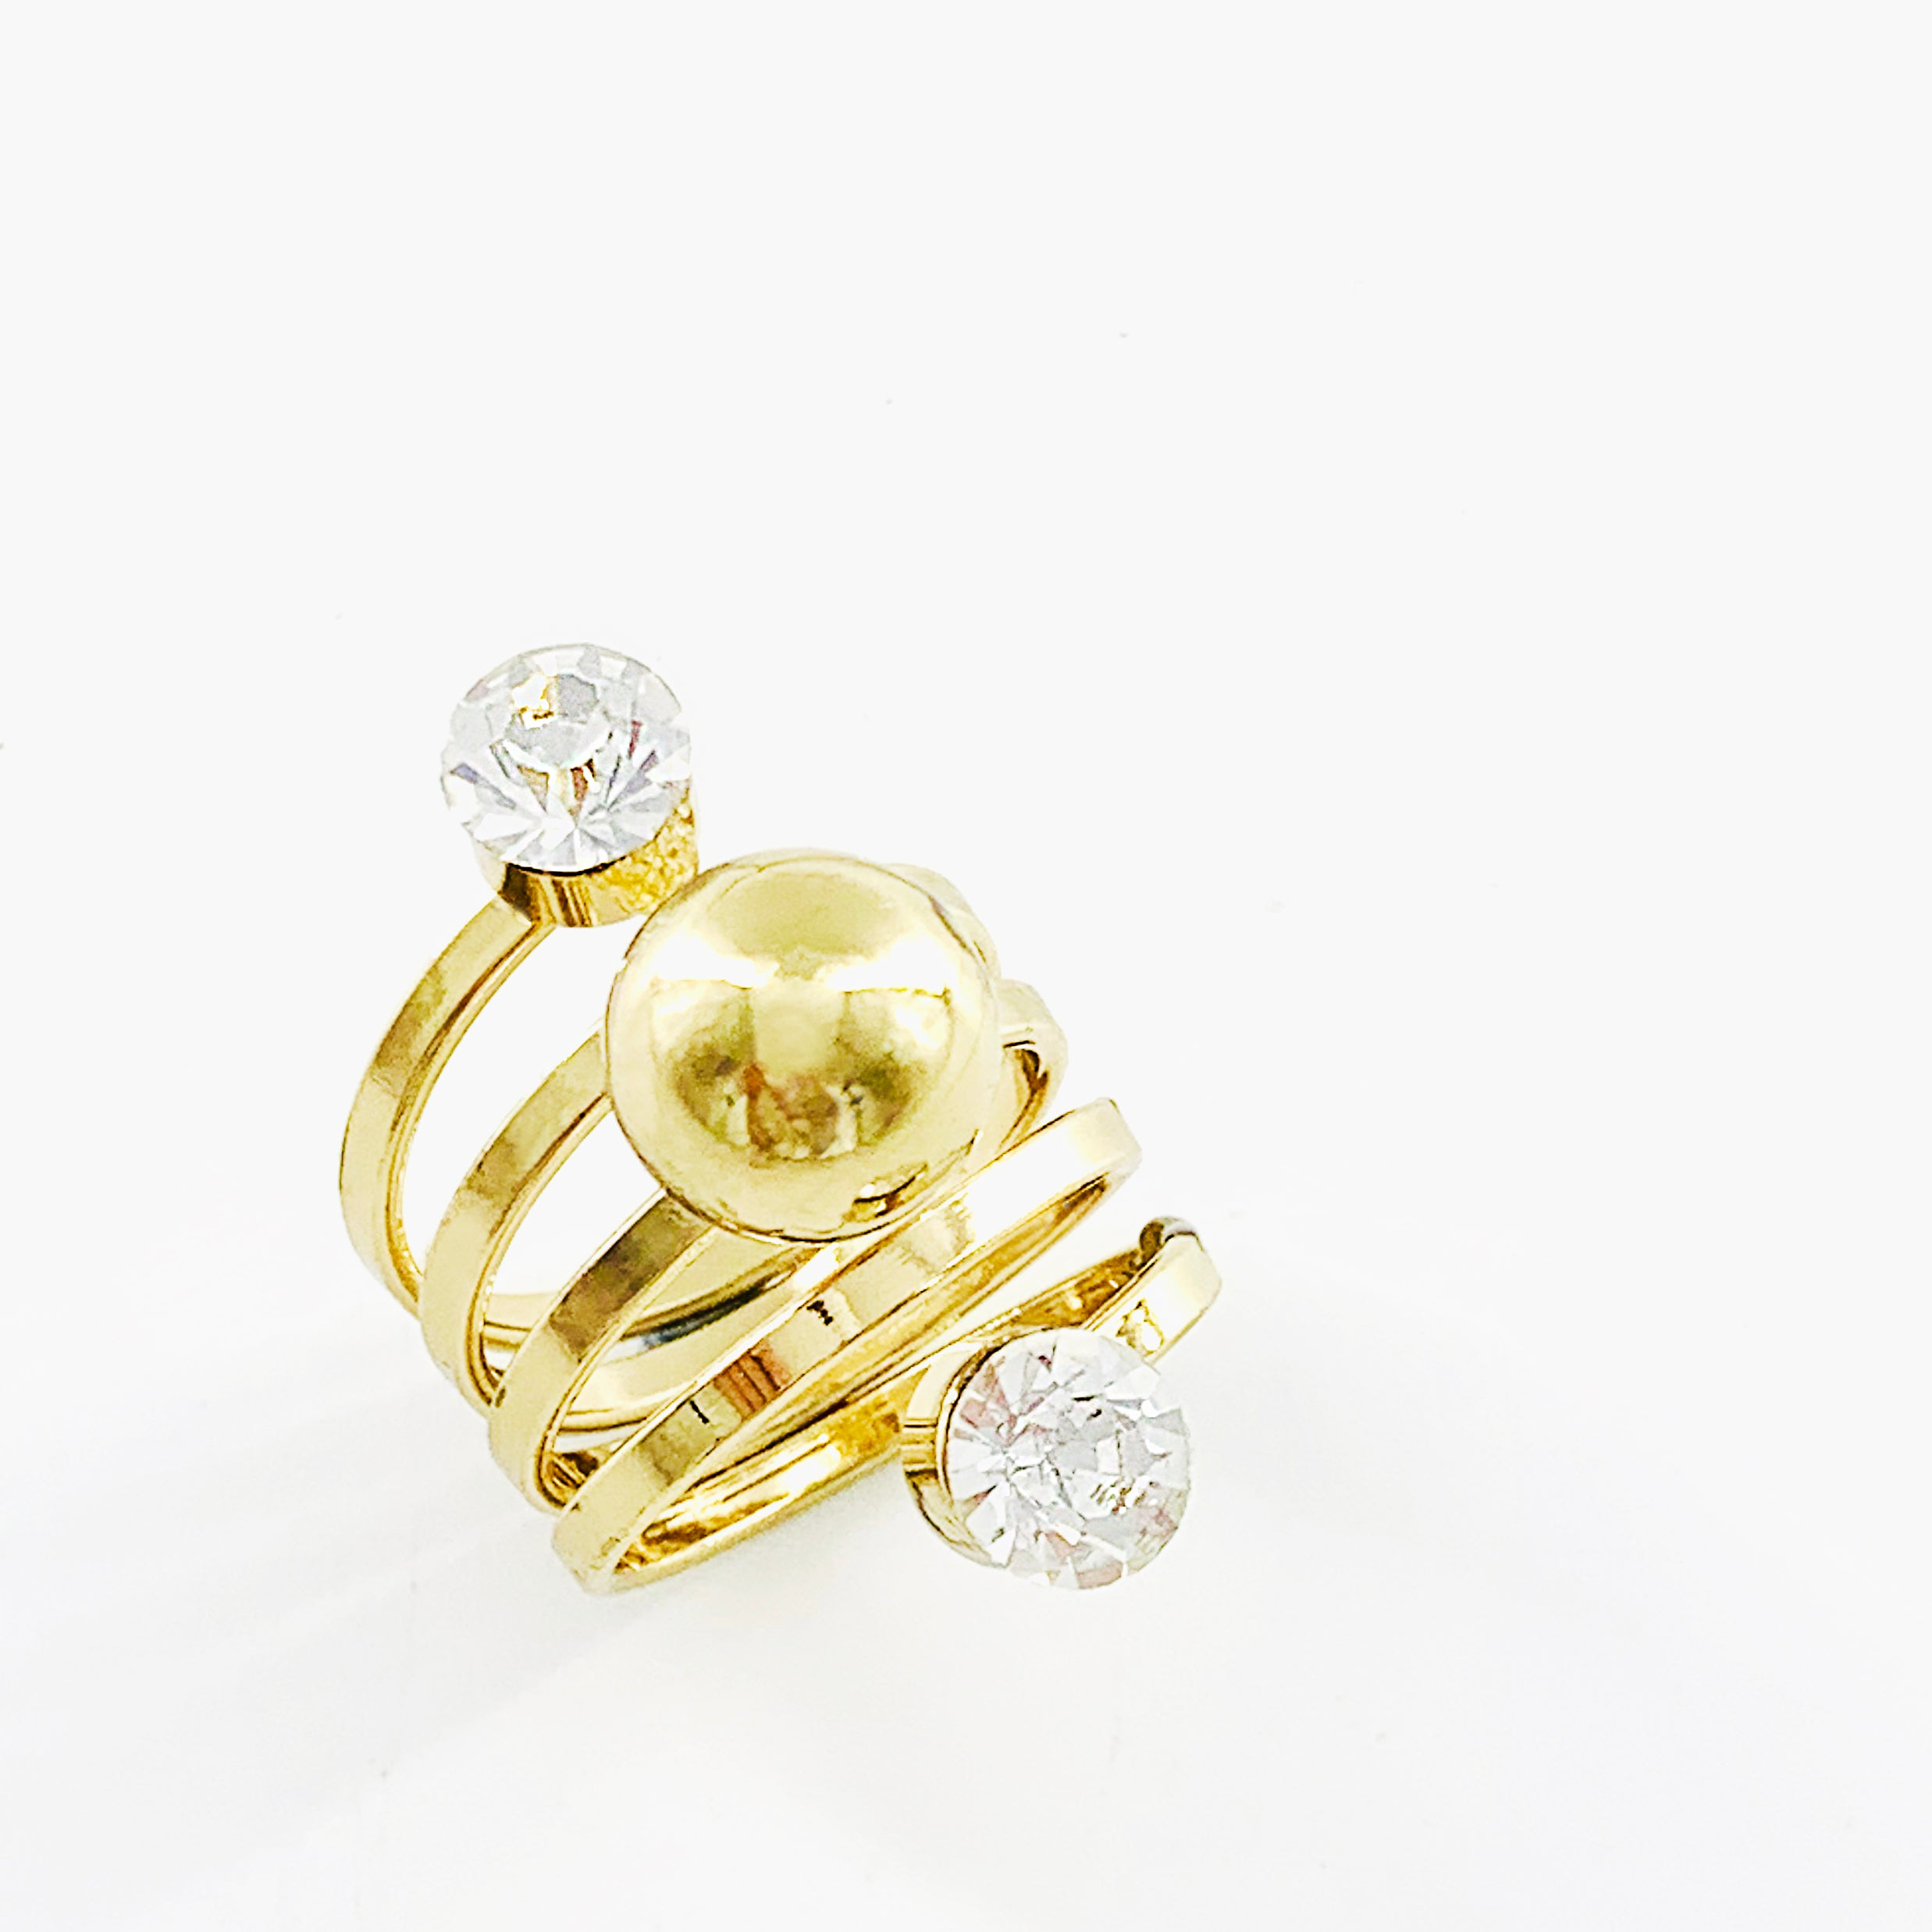 Gold ring with gold ball and diamante stones